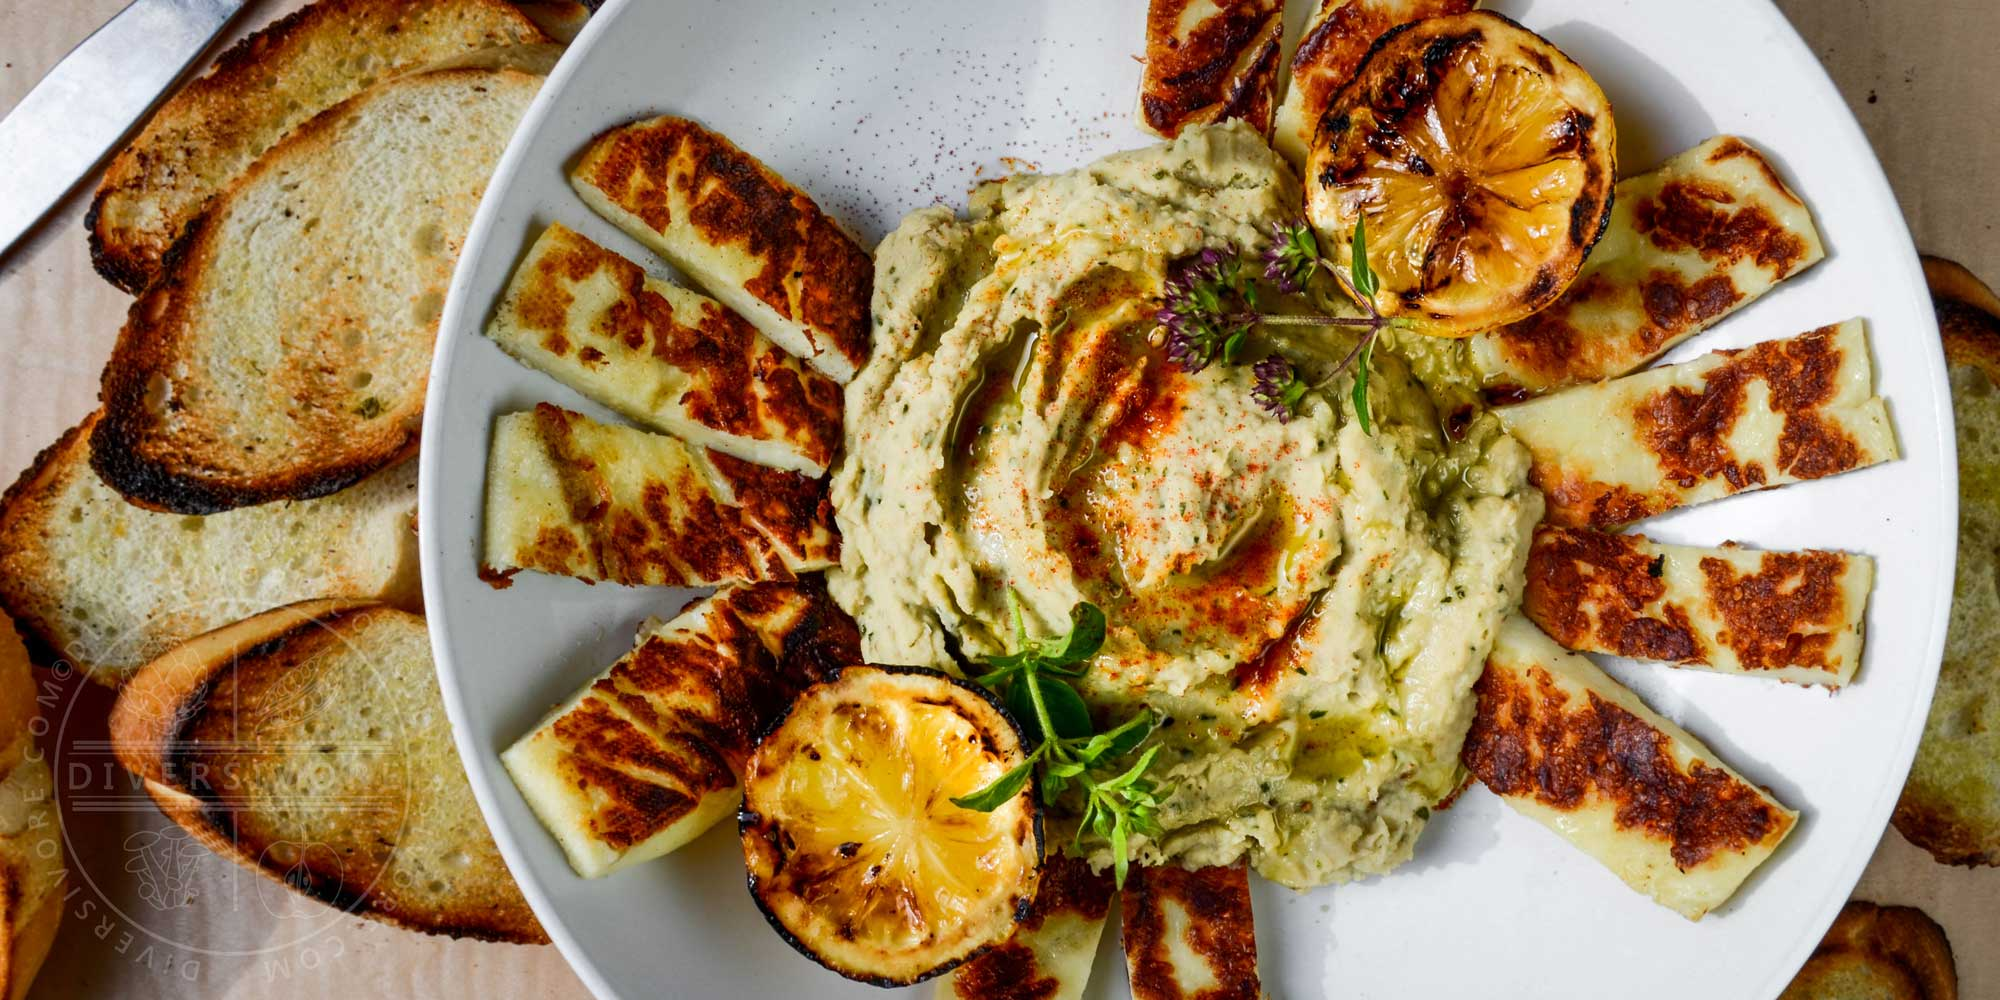 Grilled-Halloumi-with-Basil-Cannellini-Hummus-banner.jpg